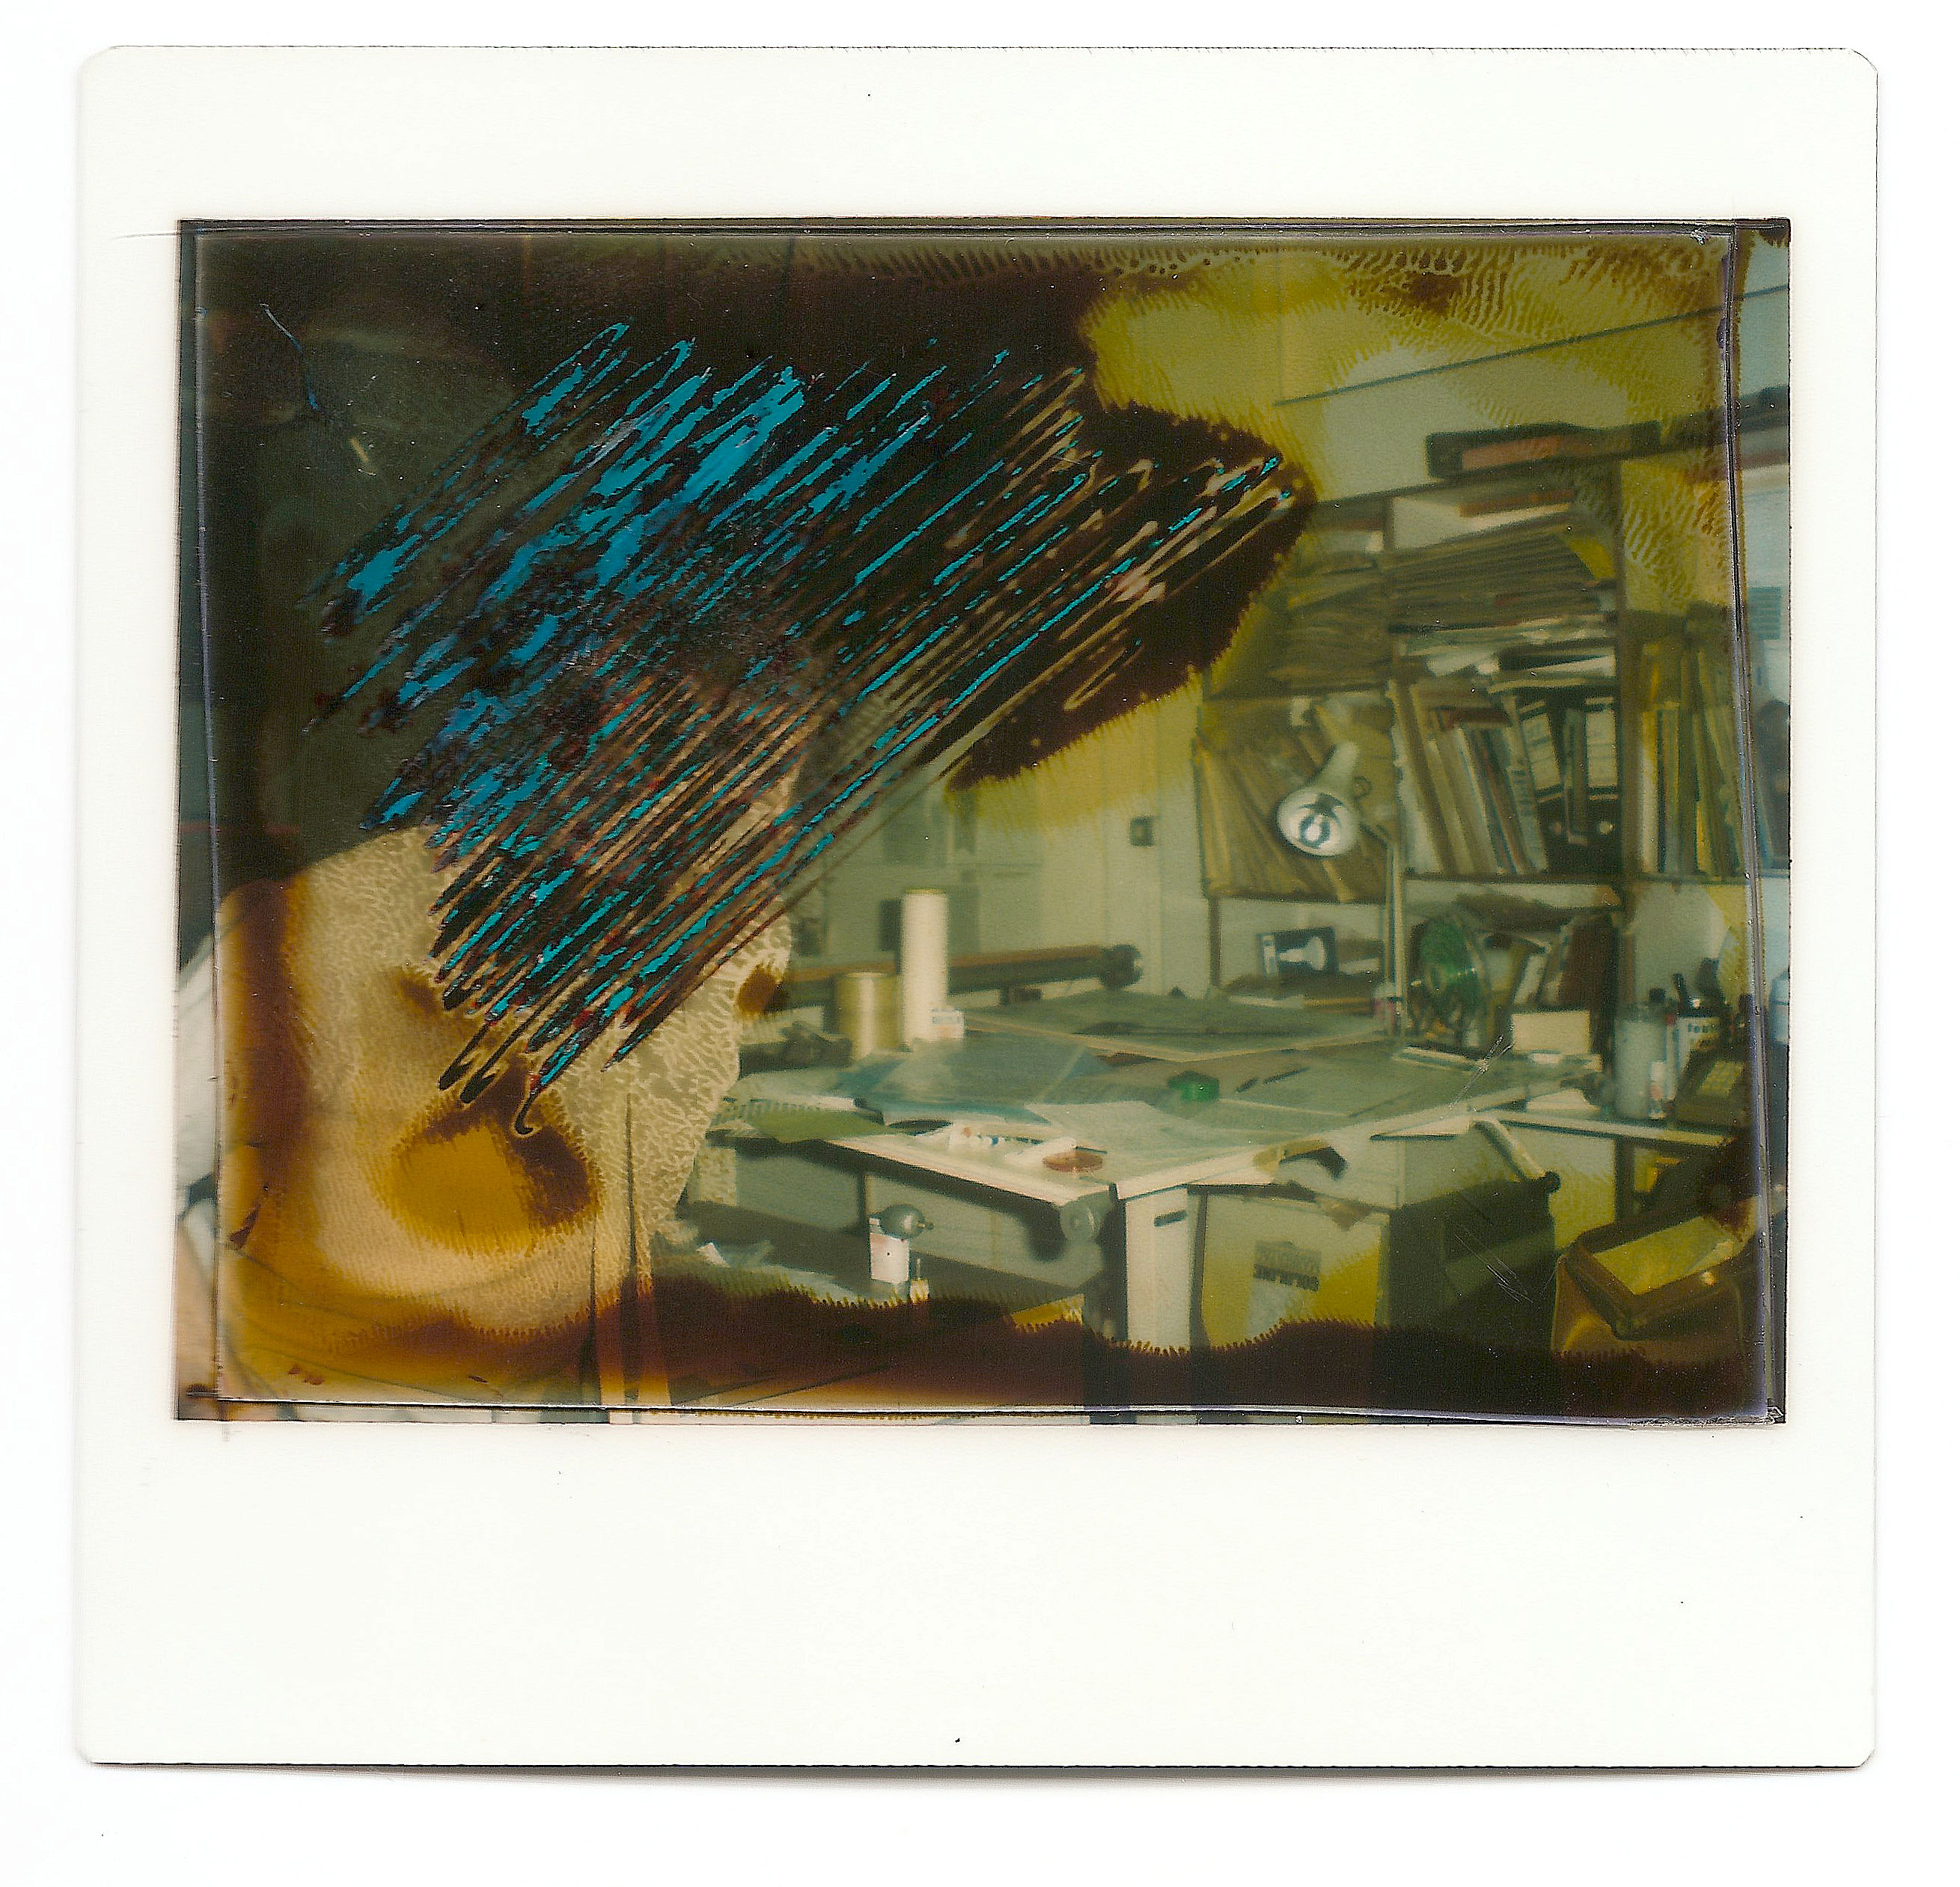 The polaroid - A temporary image